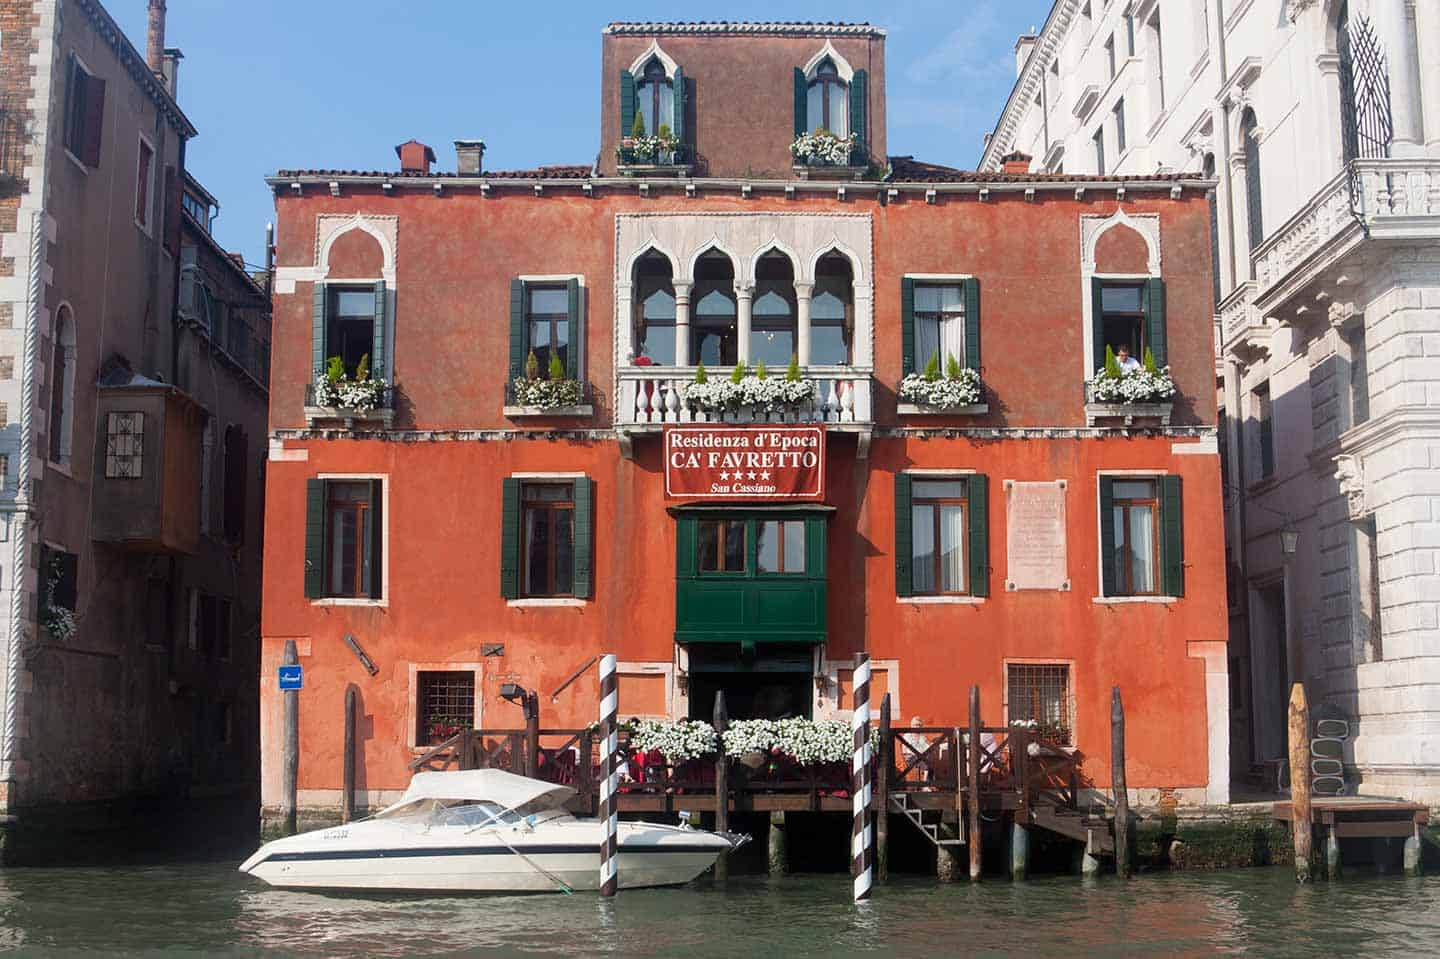 Venice Hotels on the Grand Canal Image of Ca' FAvretto Hotel San Cassiano